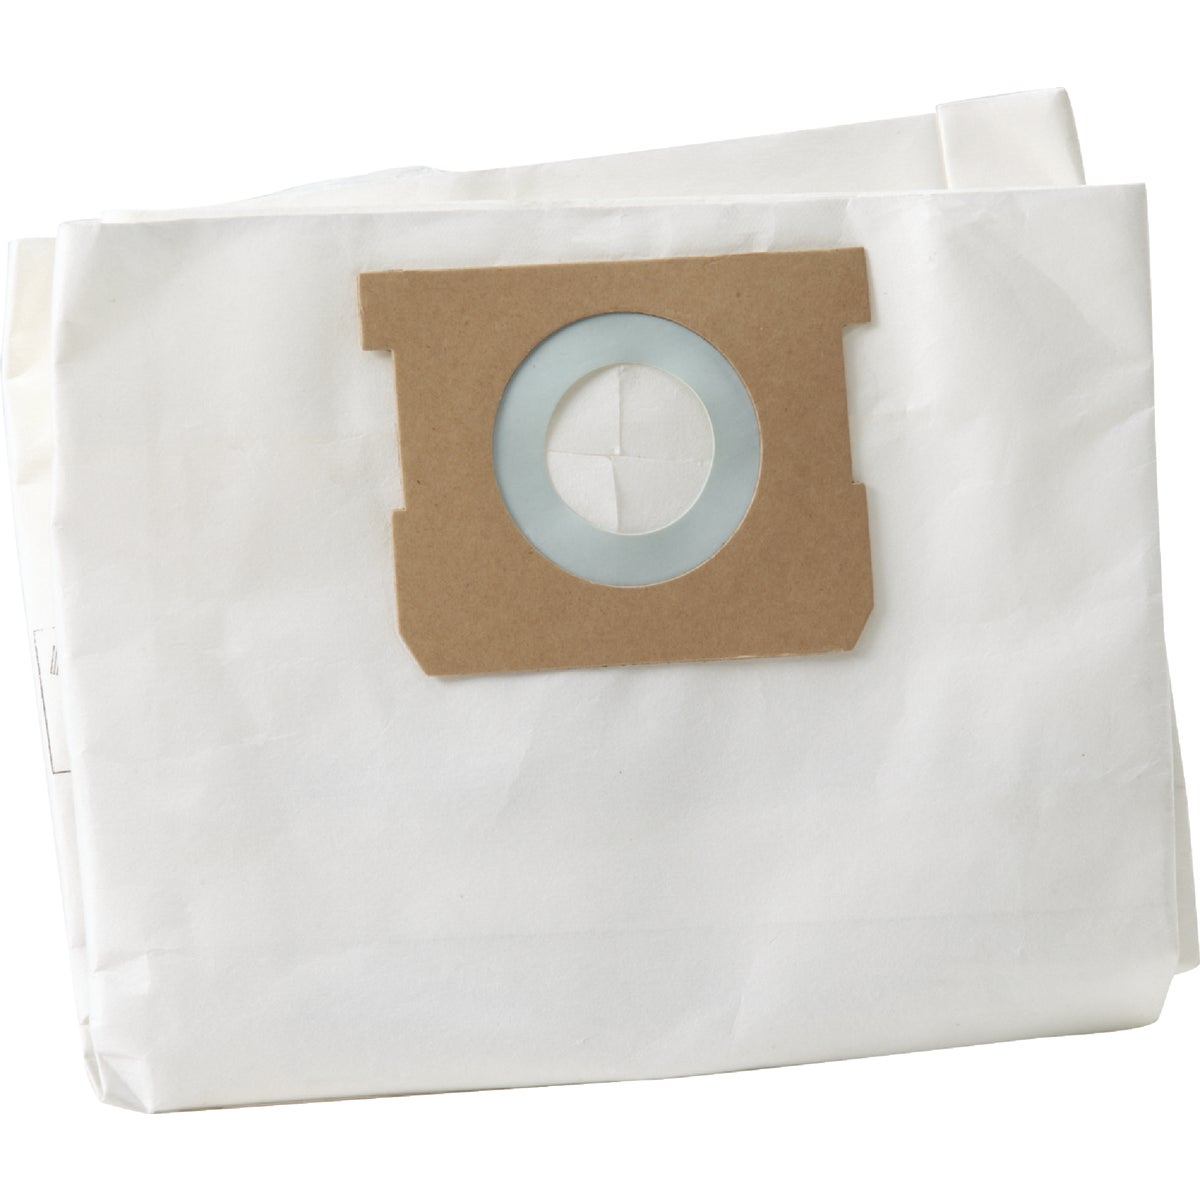 8-10GAL FILTER BAG - VDBM.CL by Channellock®